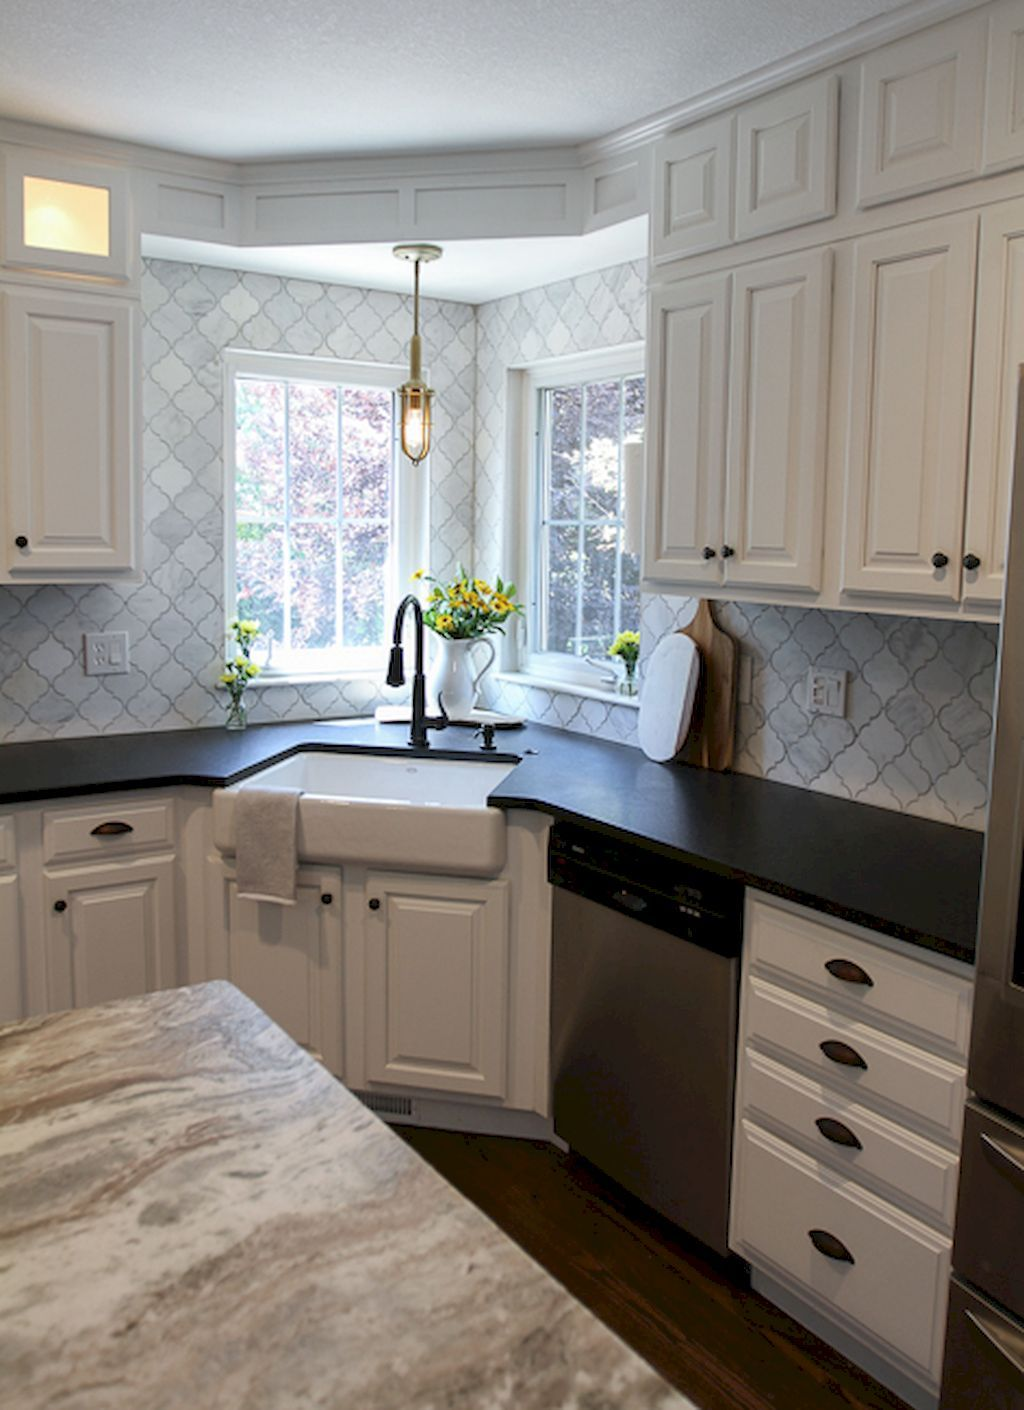 65 Modern Farmhouse Kitchen Sink Ideas (With images